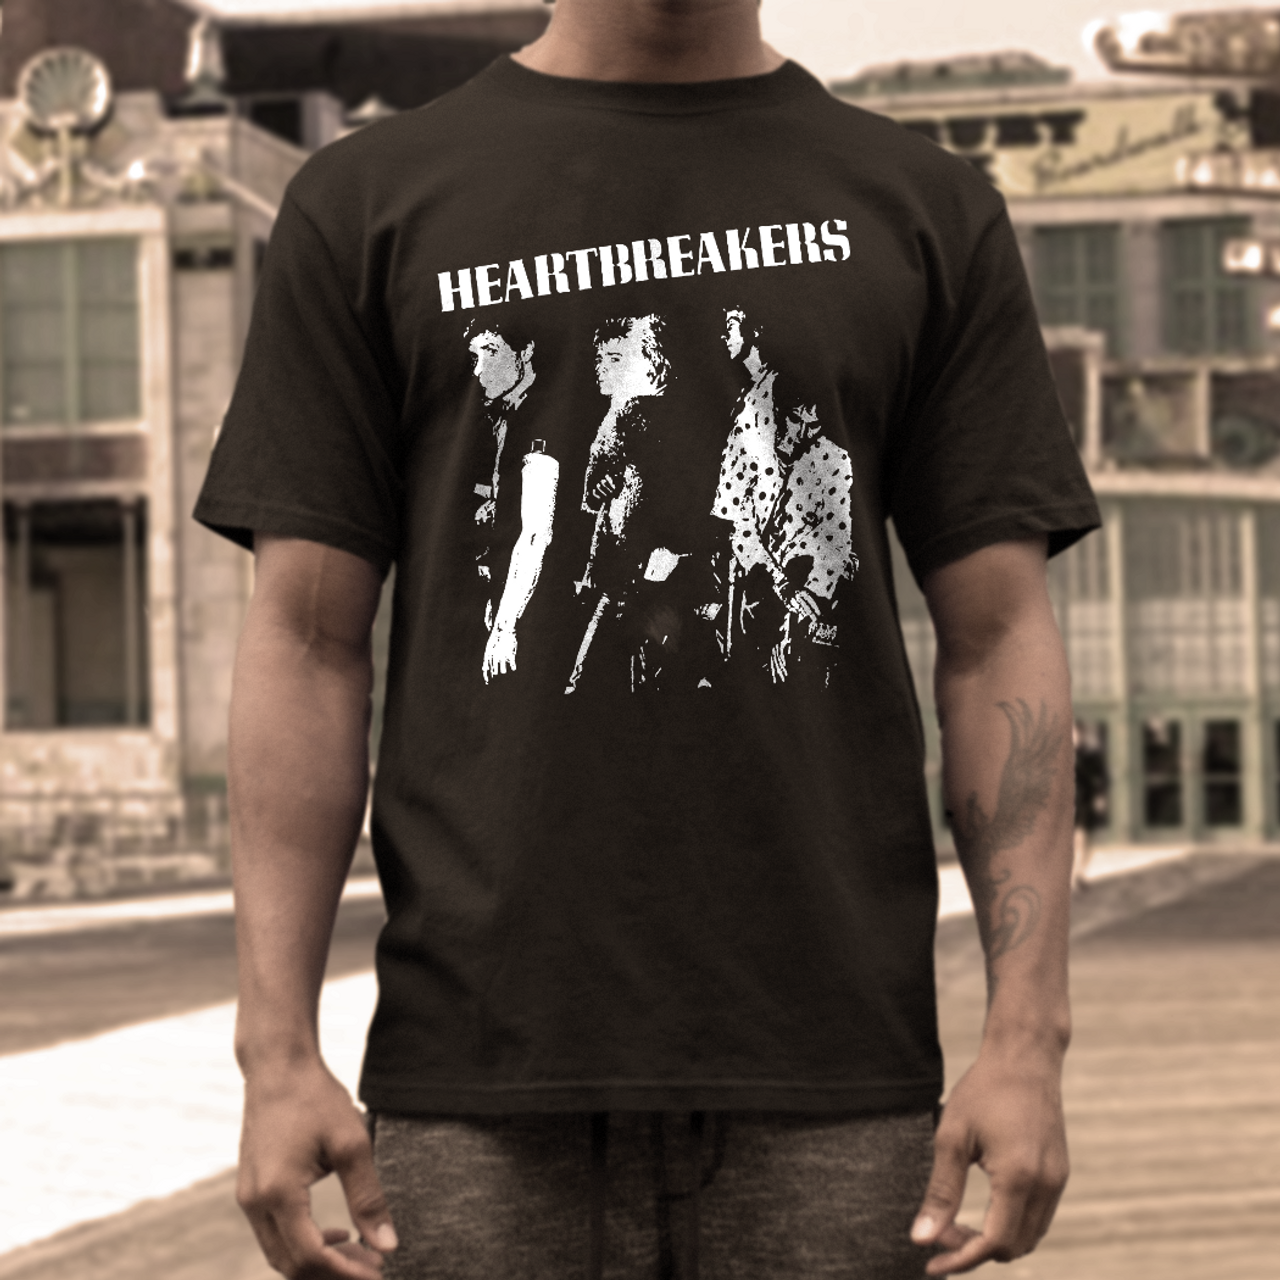 The Heartbreakers band t shirt Johnny  Thunders